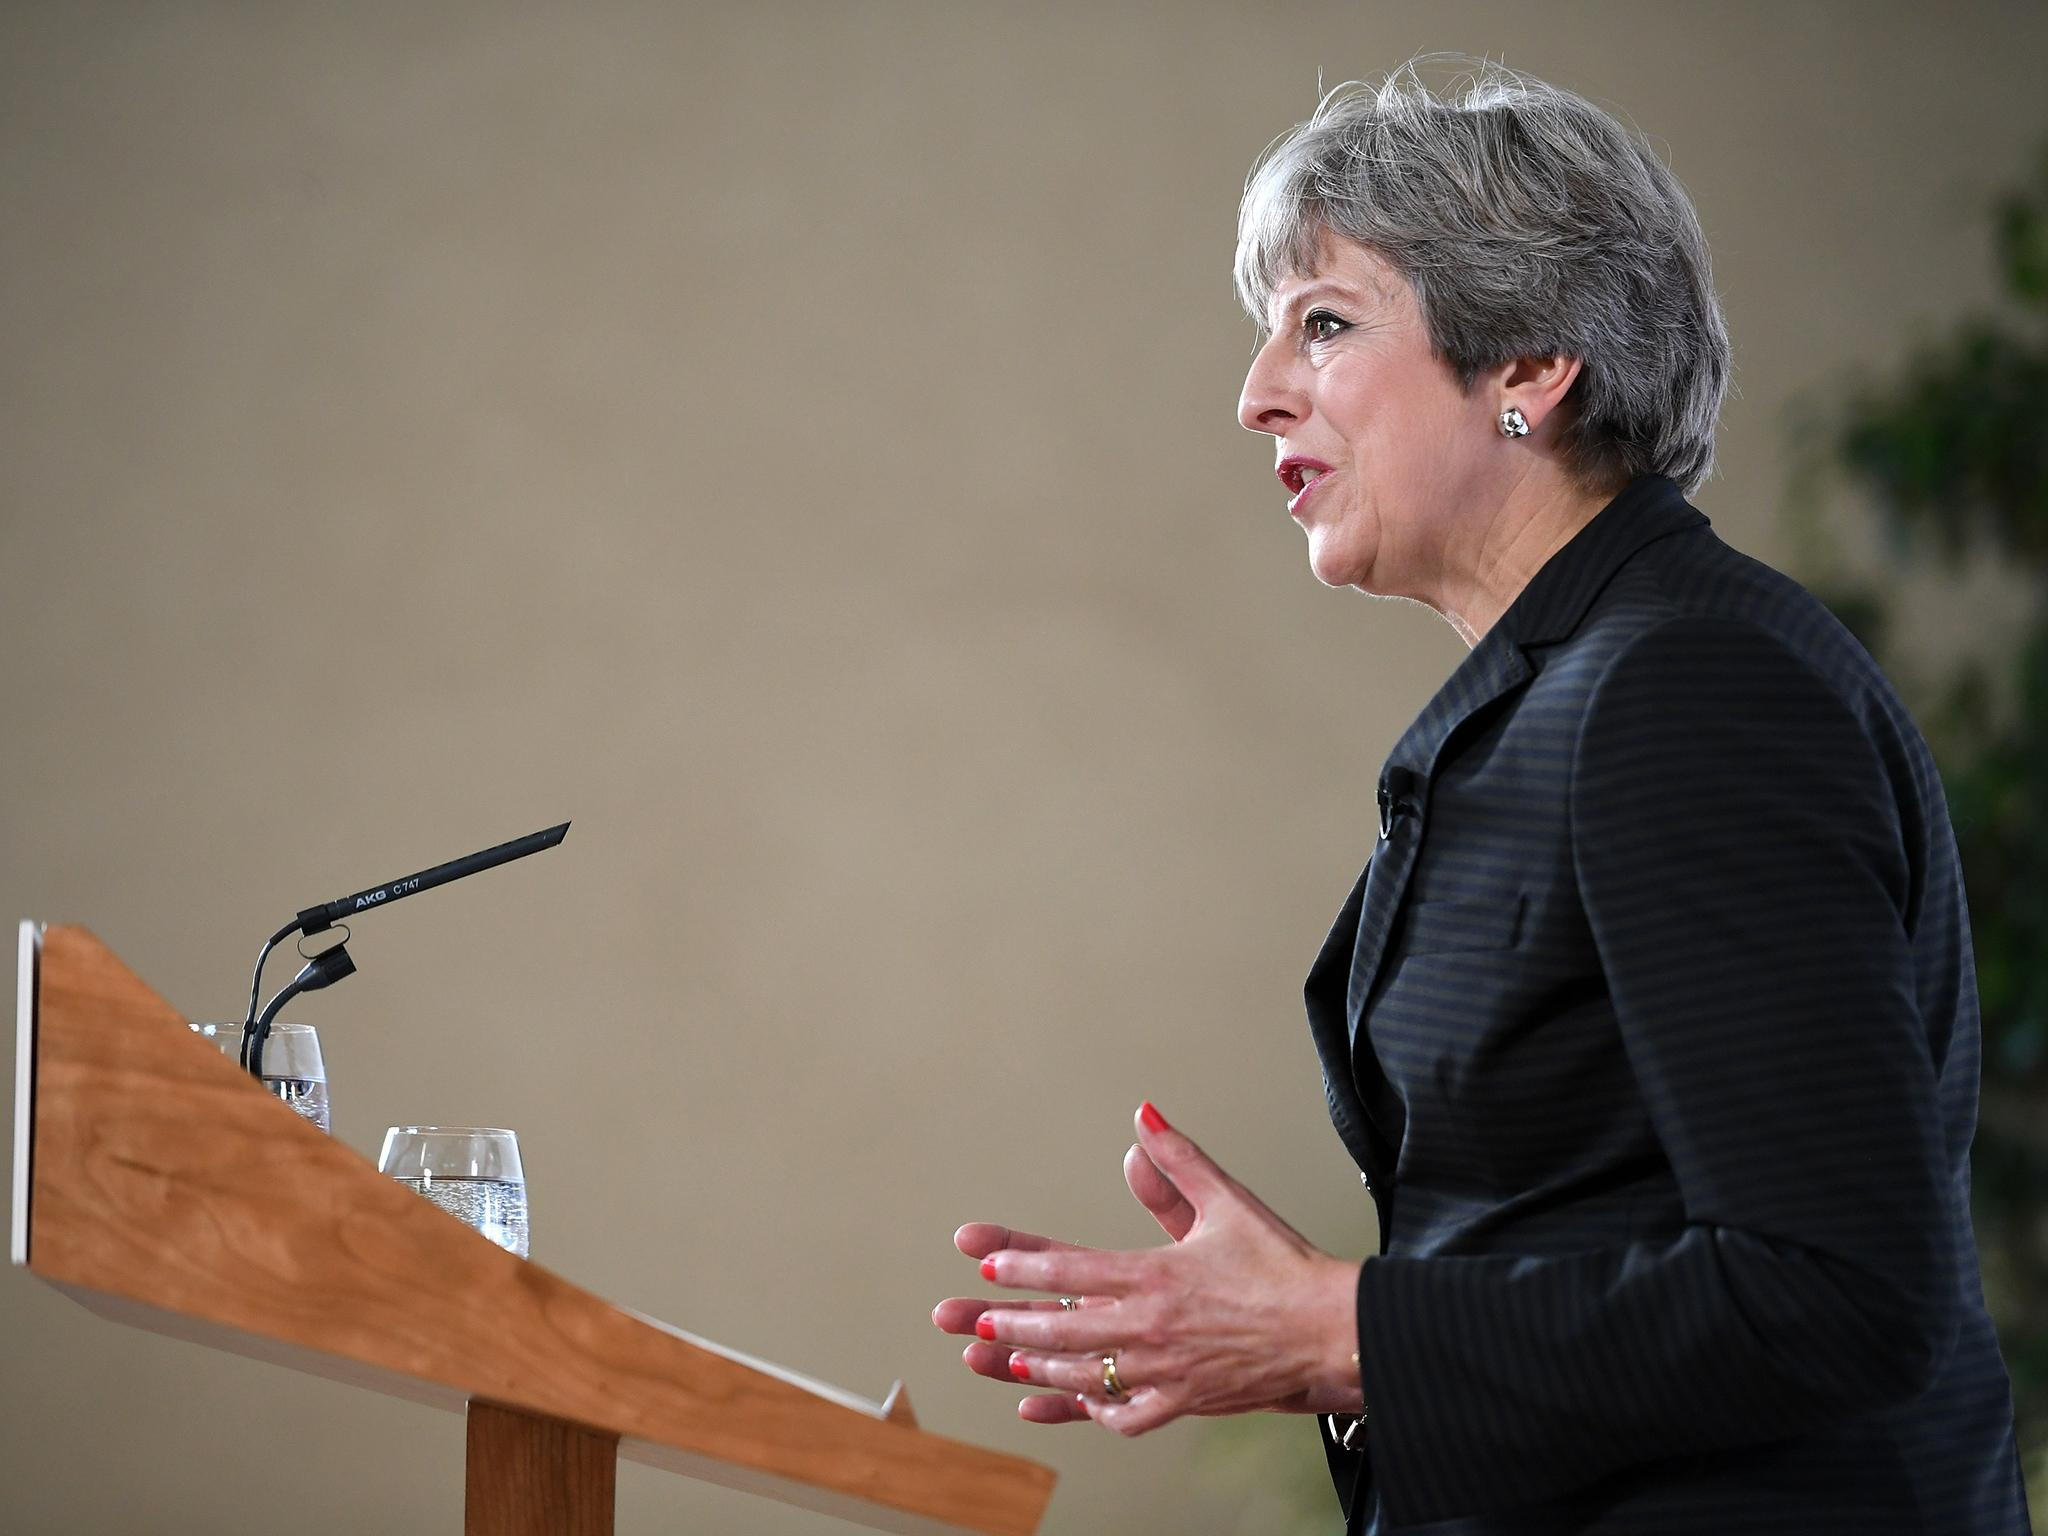 Brexit: Theresa May unveils plans for Britain to stay in single market five years after it voted Leave